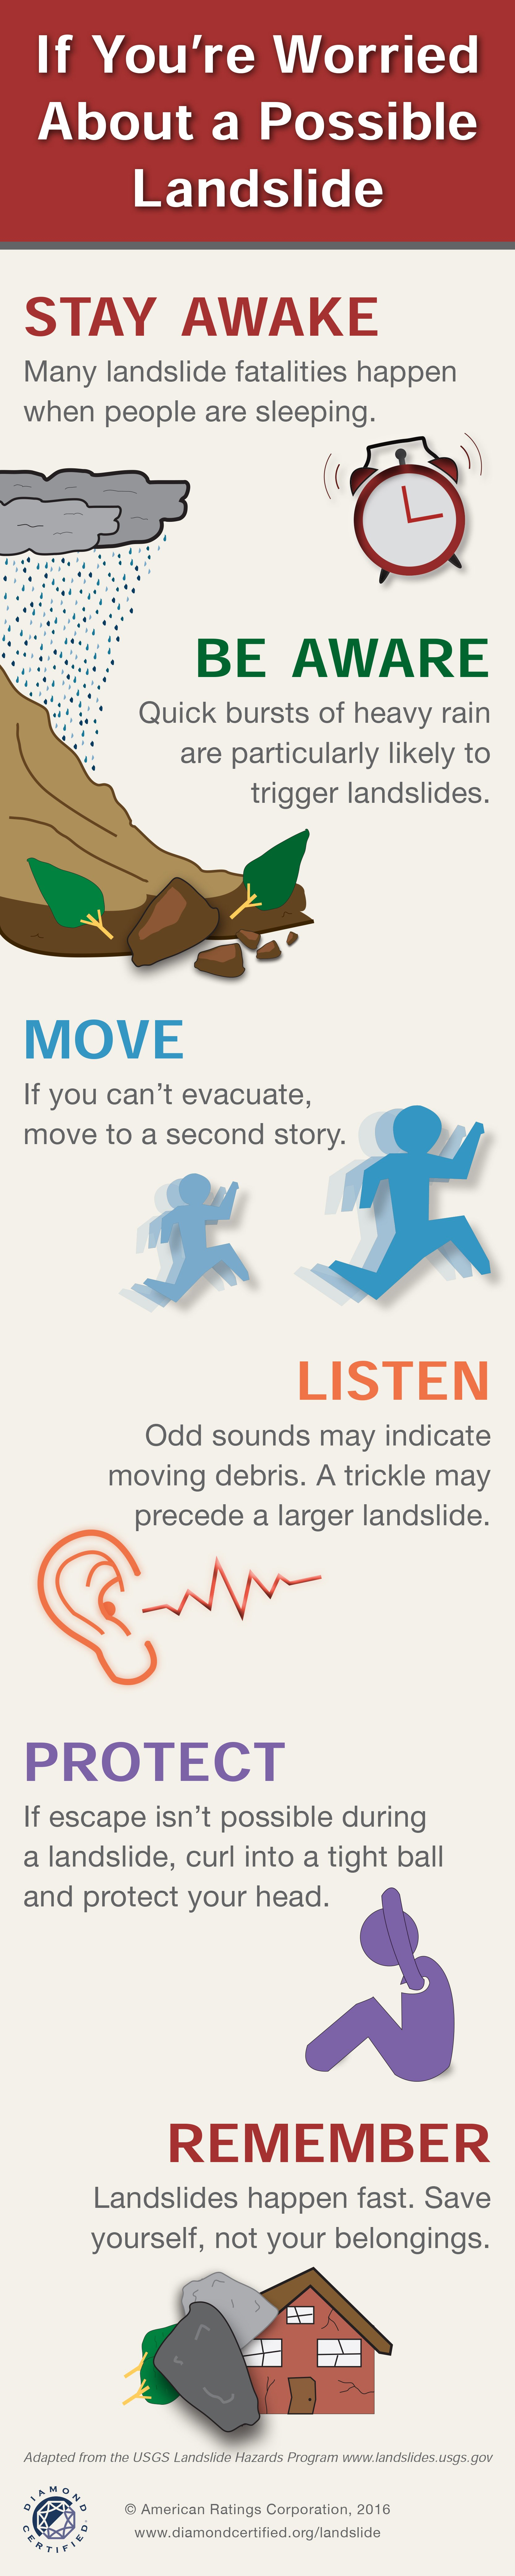 Infographic How To Stay Safe During Landslides Diamond